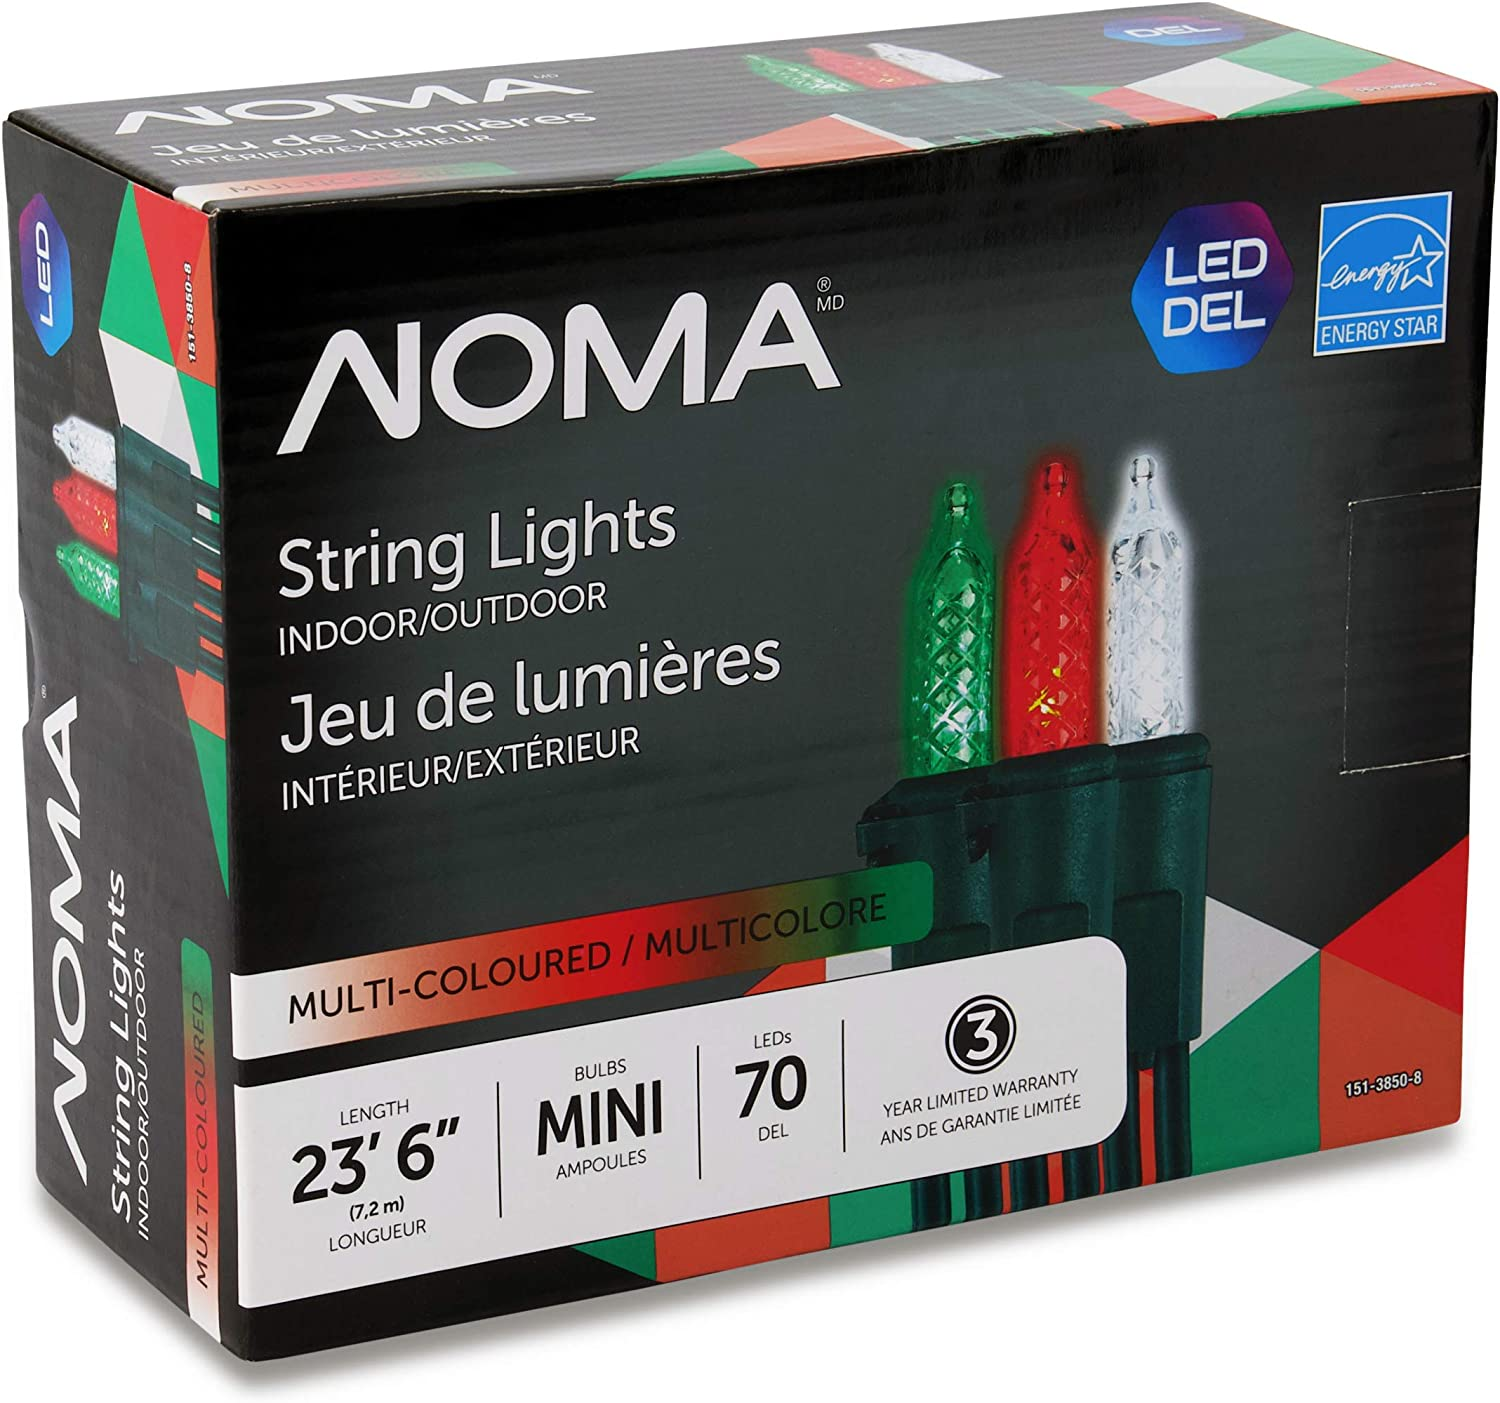 NOMA Premium Mini LED Christmas Lights | Indoor/Outdoor String Lights | Red, Green, and Clear Pure White Bulbs | 70 Light Set | 23.6 Foot Strand